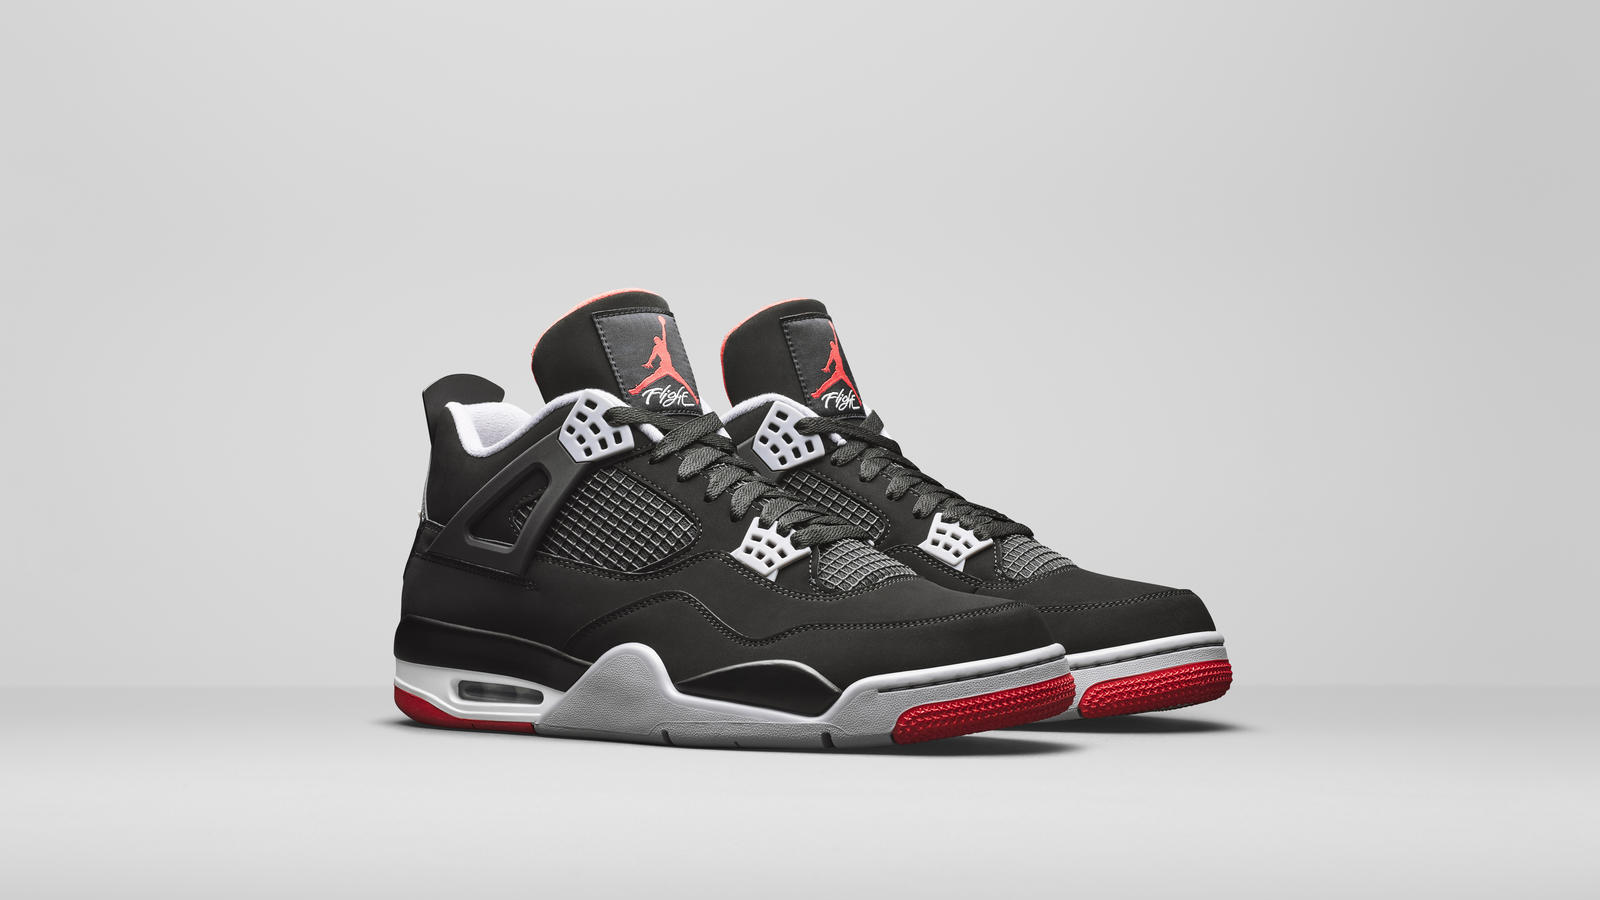 patrocinador País de origen Trágico  Air Jordan 4 Bred Official Images and Release Date - Nike News